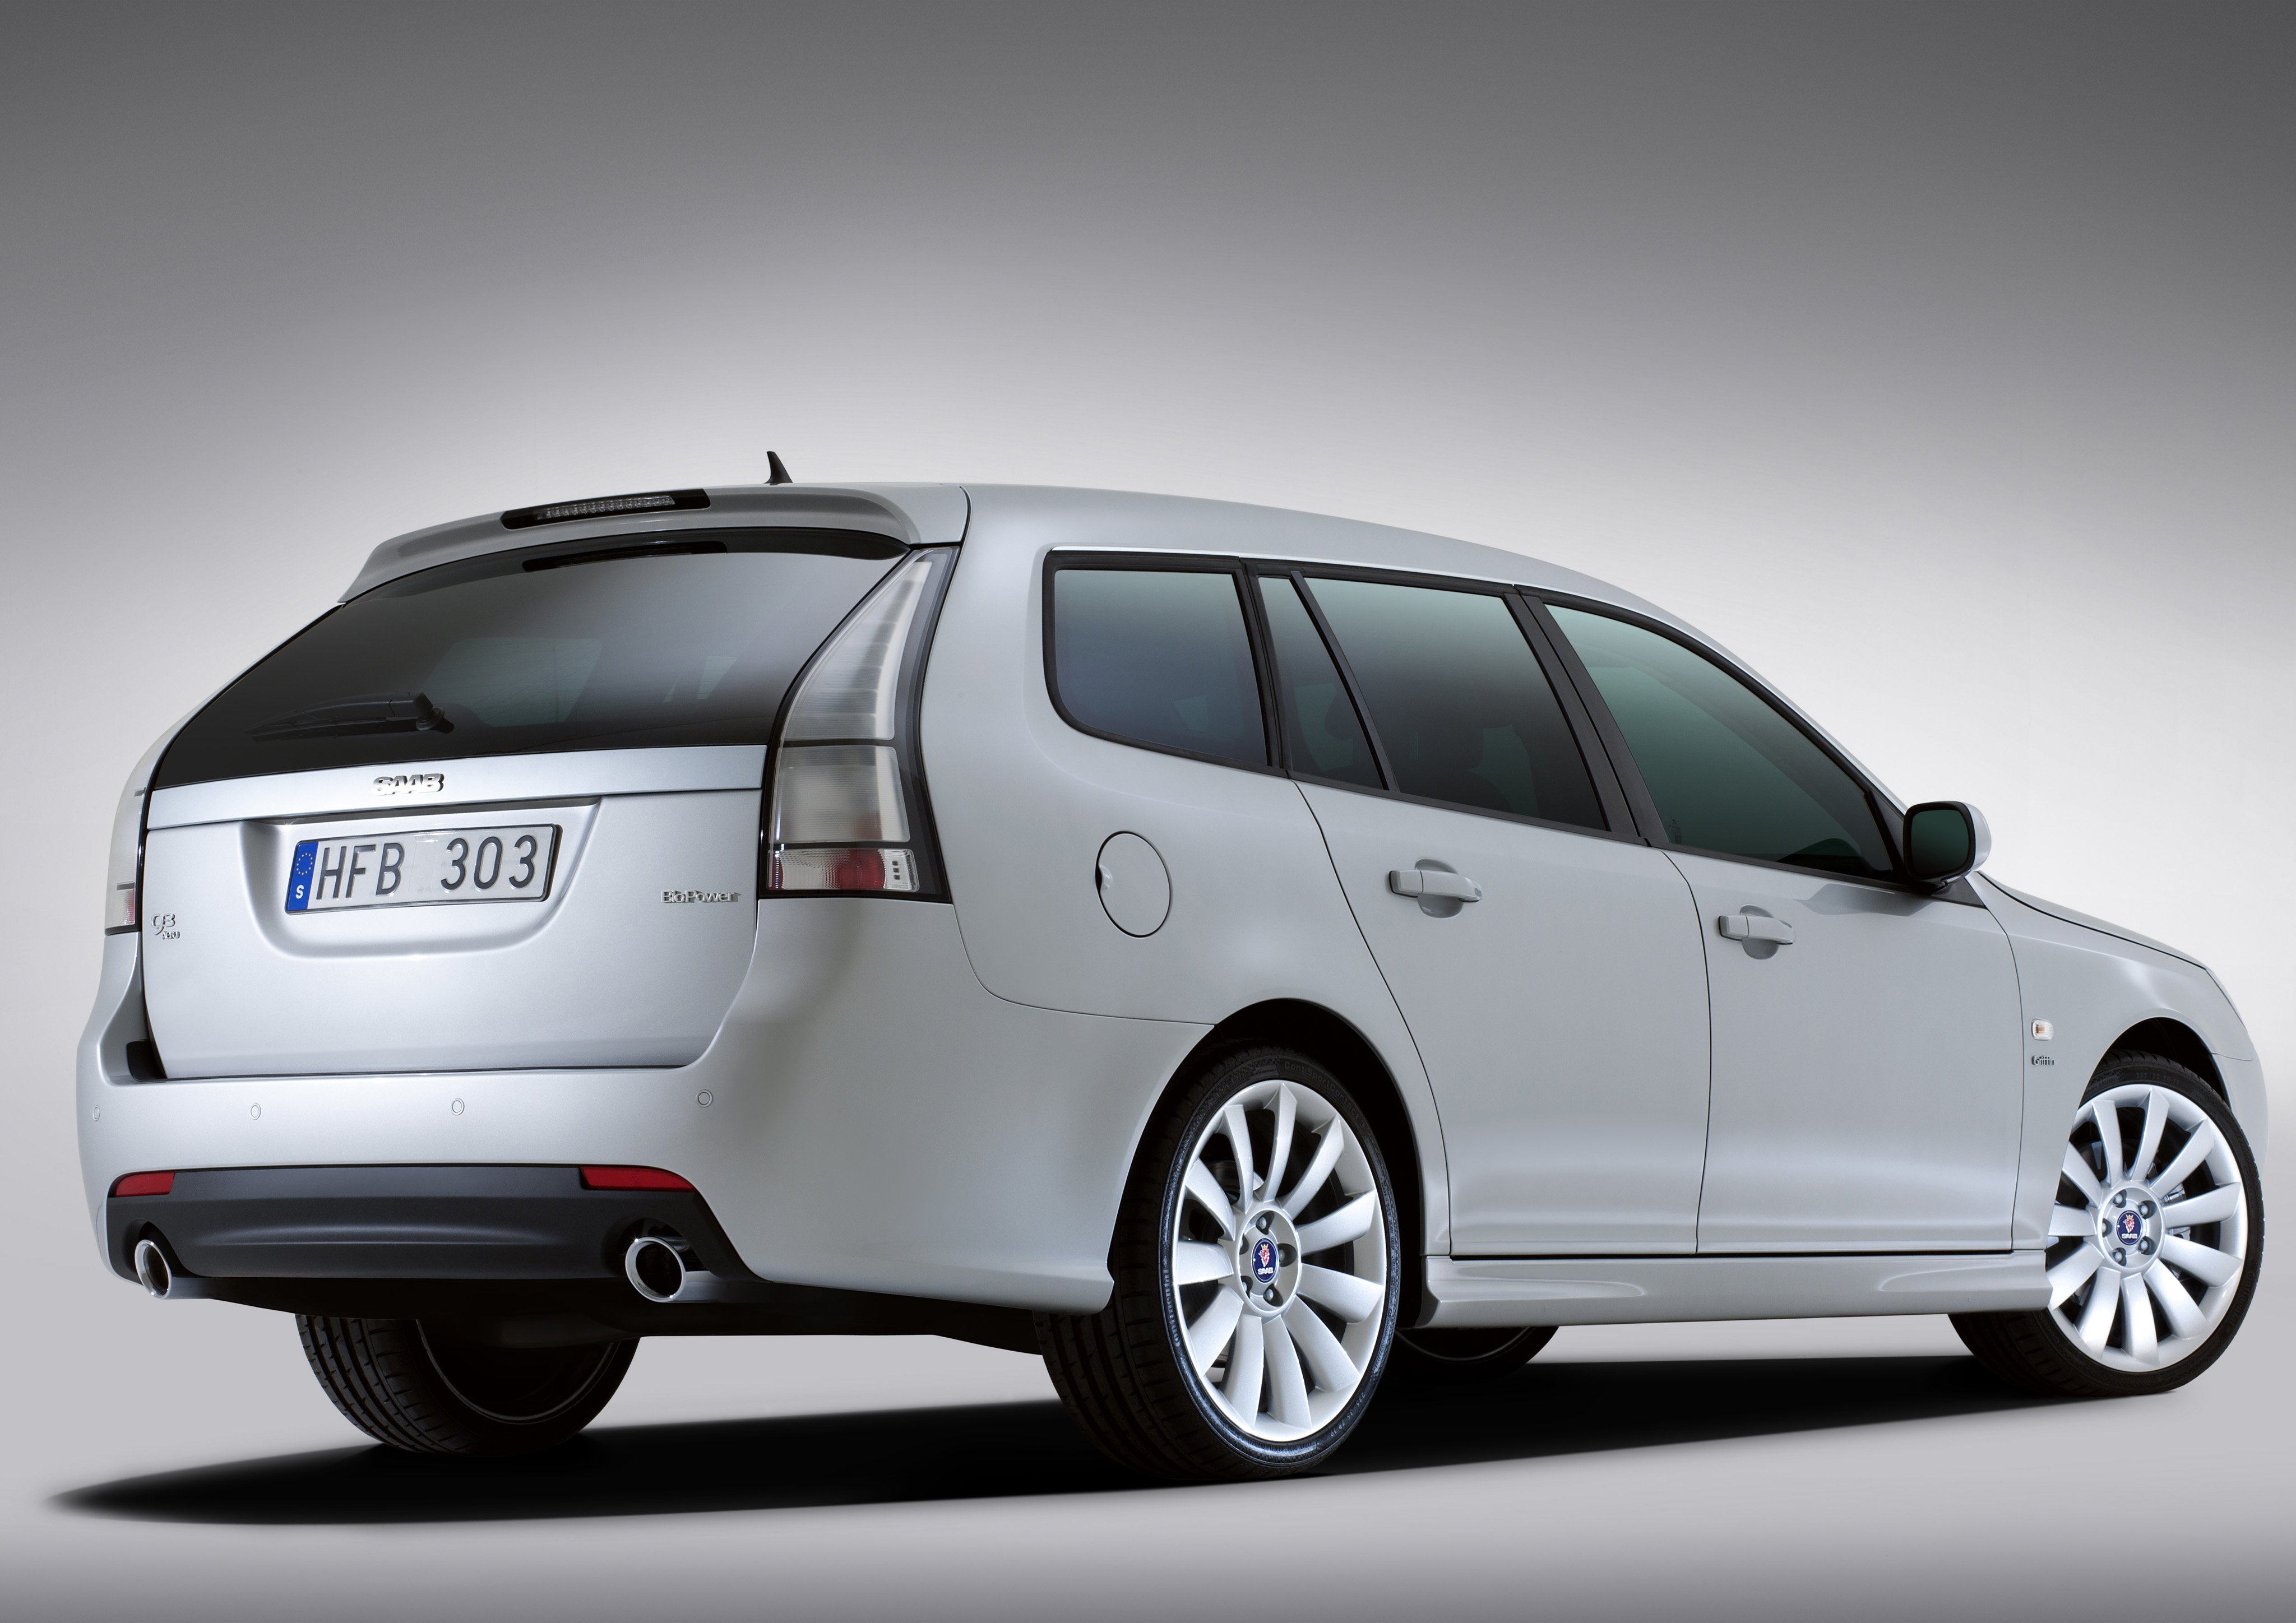 2011 saab 9 3 griffin aero sportcombi stationwagon. Black Bedroom Furniture Sets. Home Design Ideas